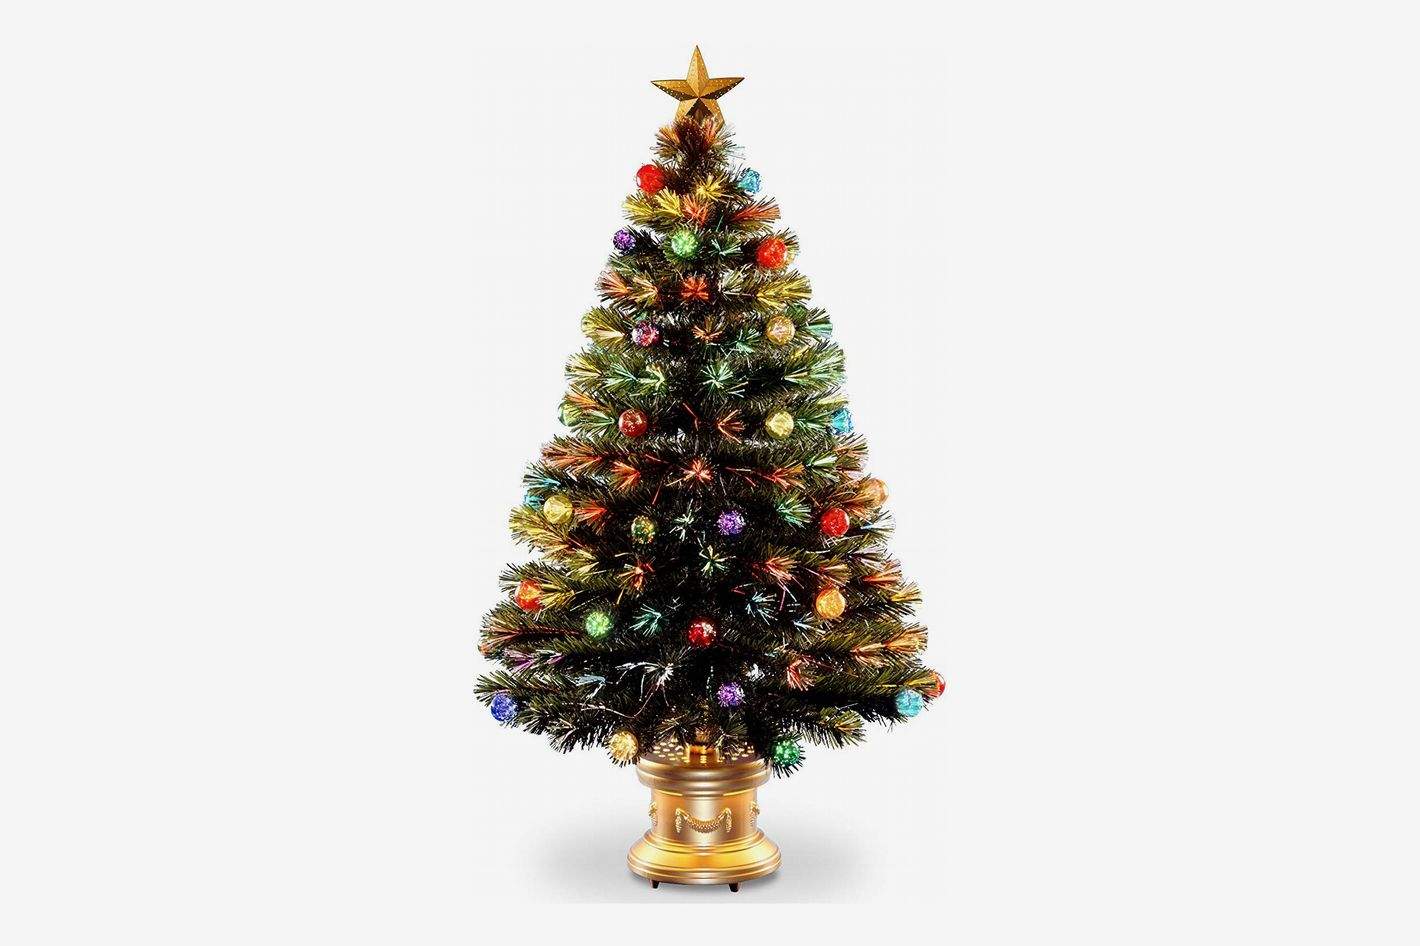 National Tree 48 Inch Fiber Optic Ornament Fireworks Tree with Gold Top Star